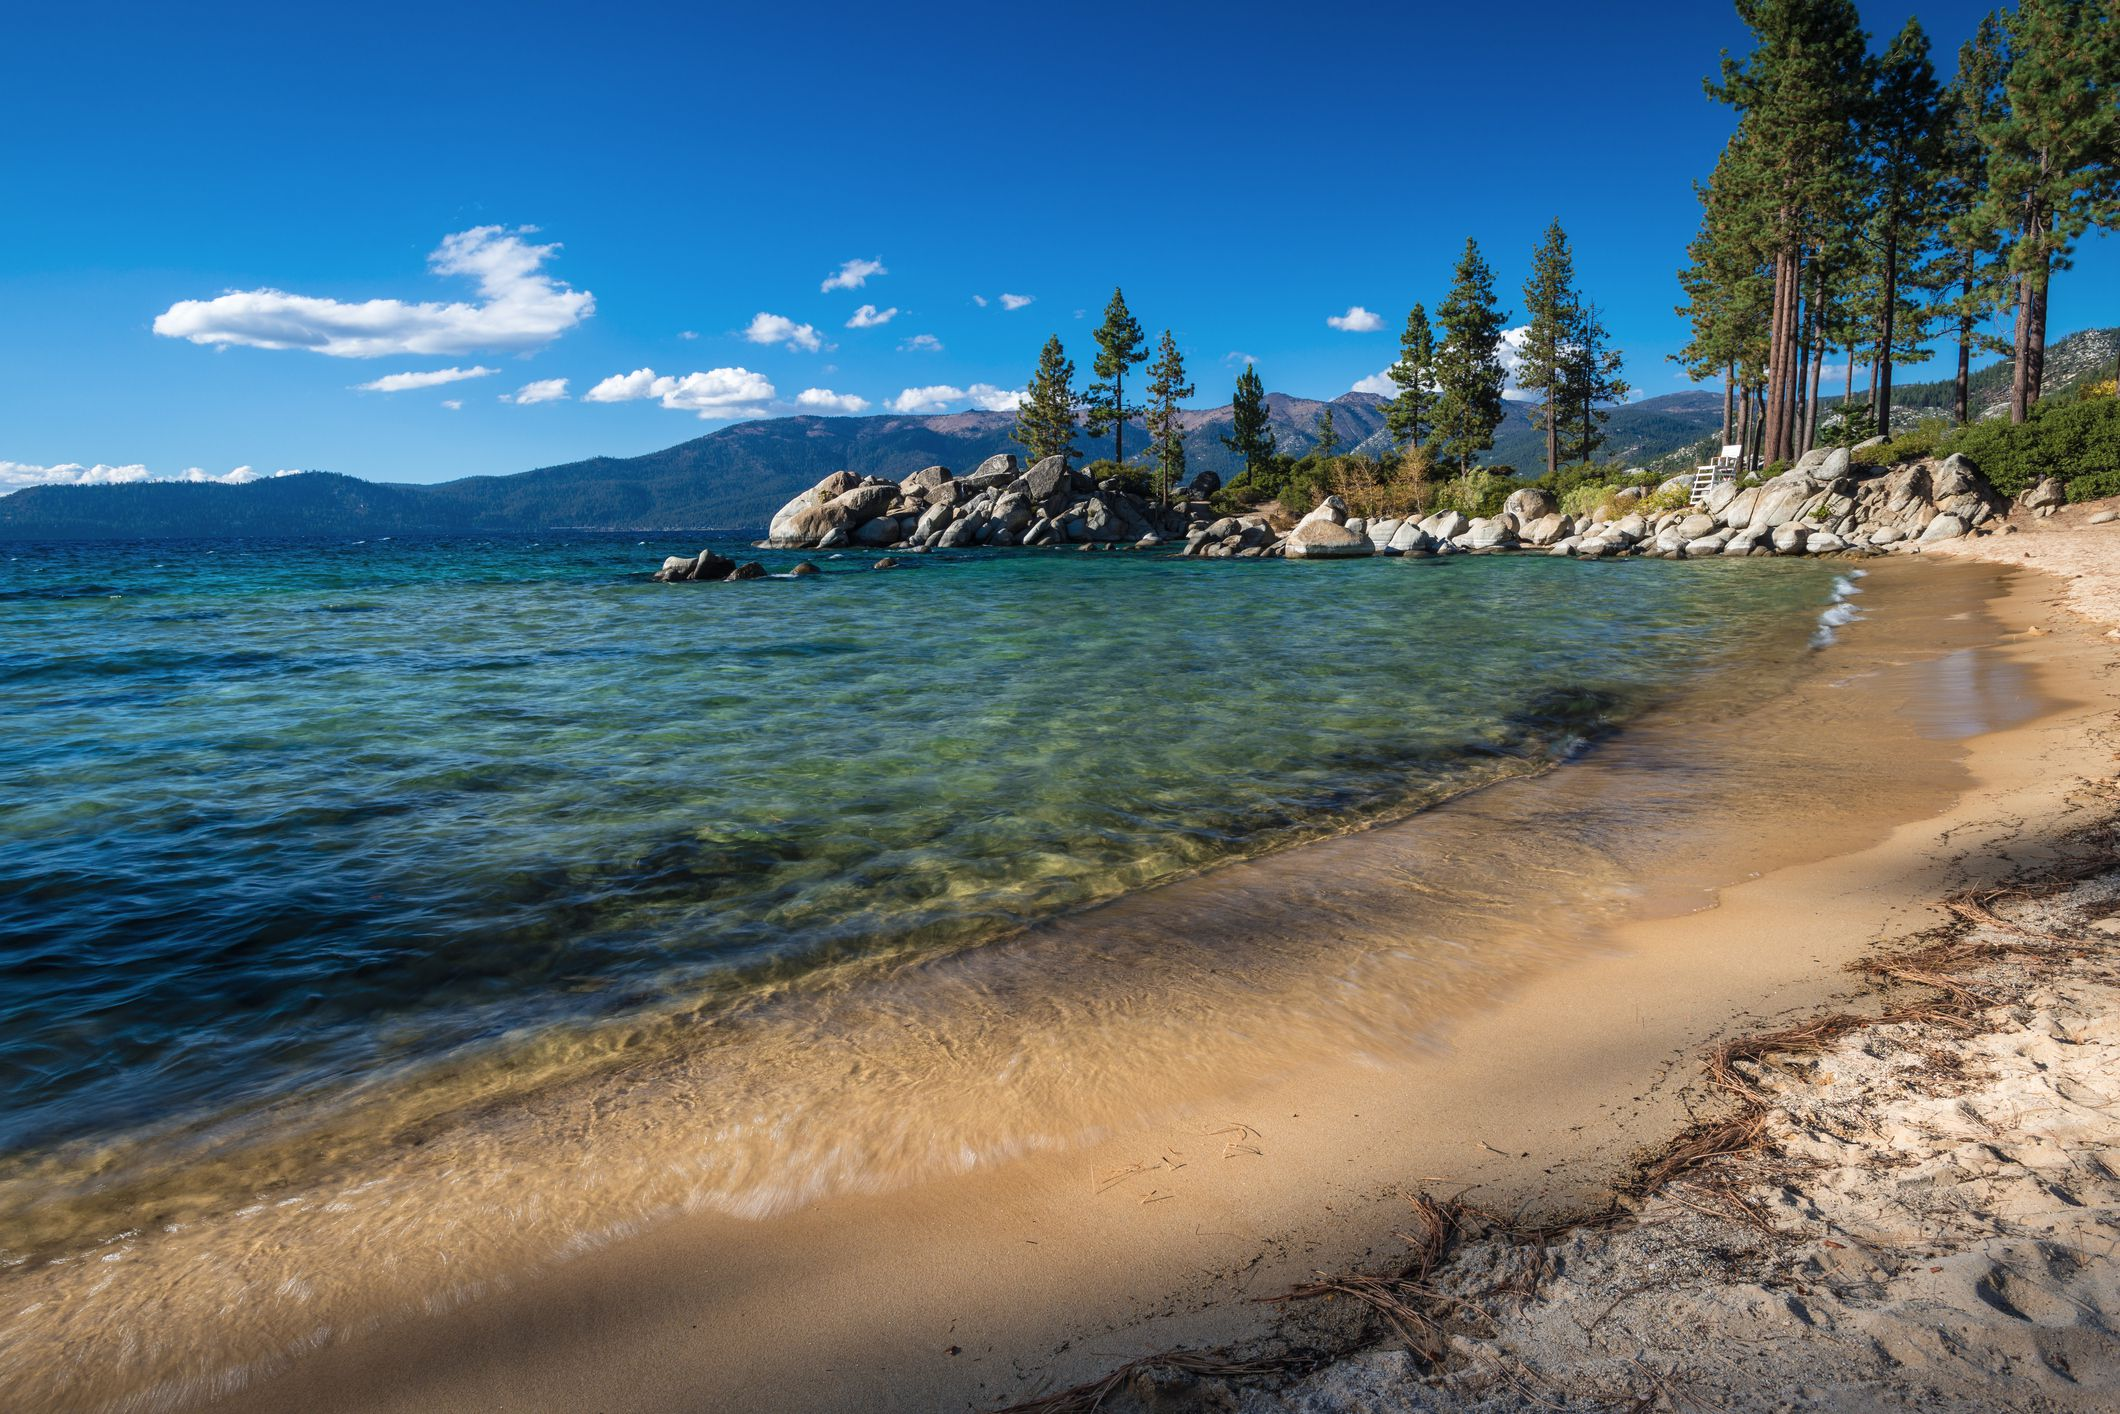 Swimming and Water Play Beaches at Lake Tahoe